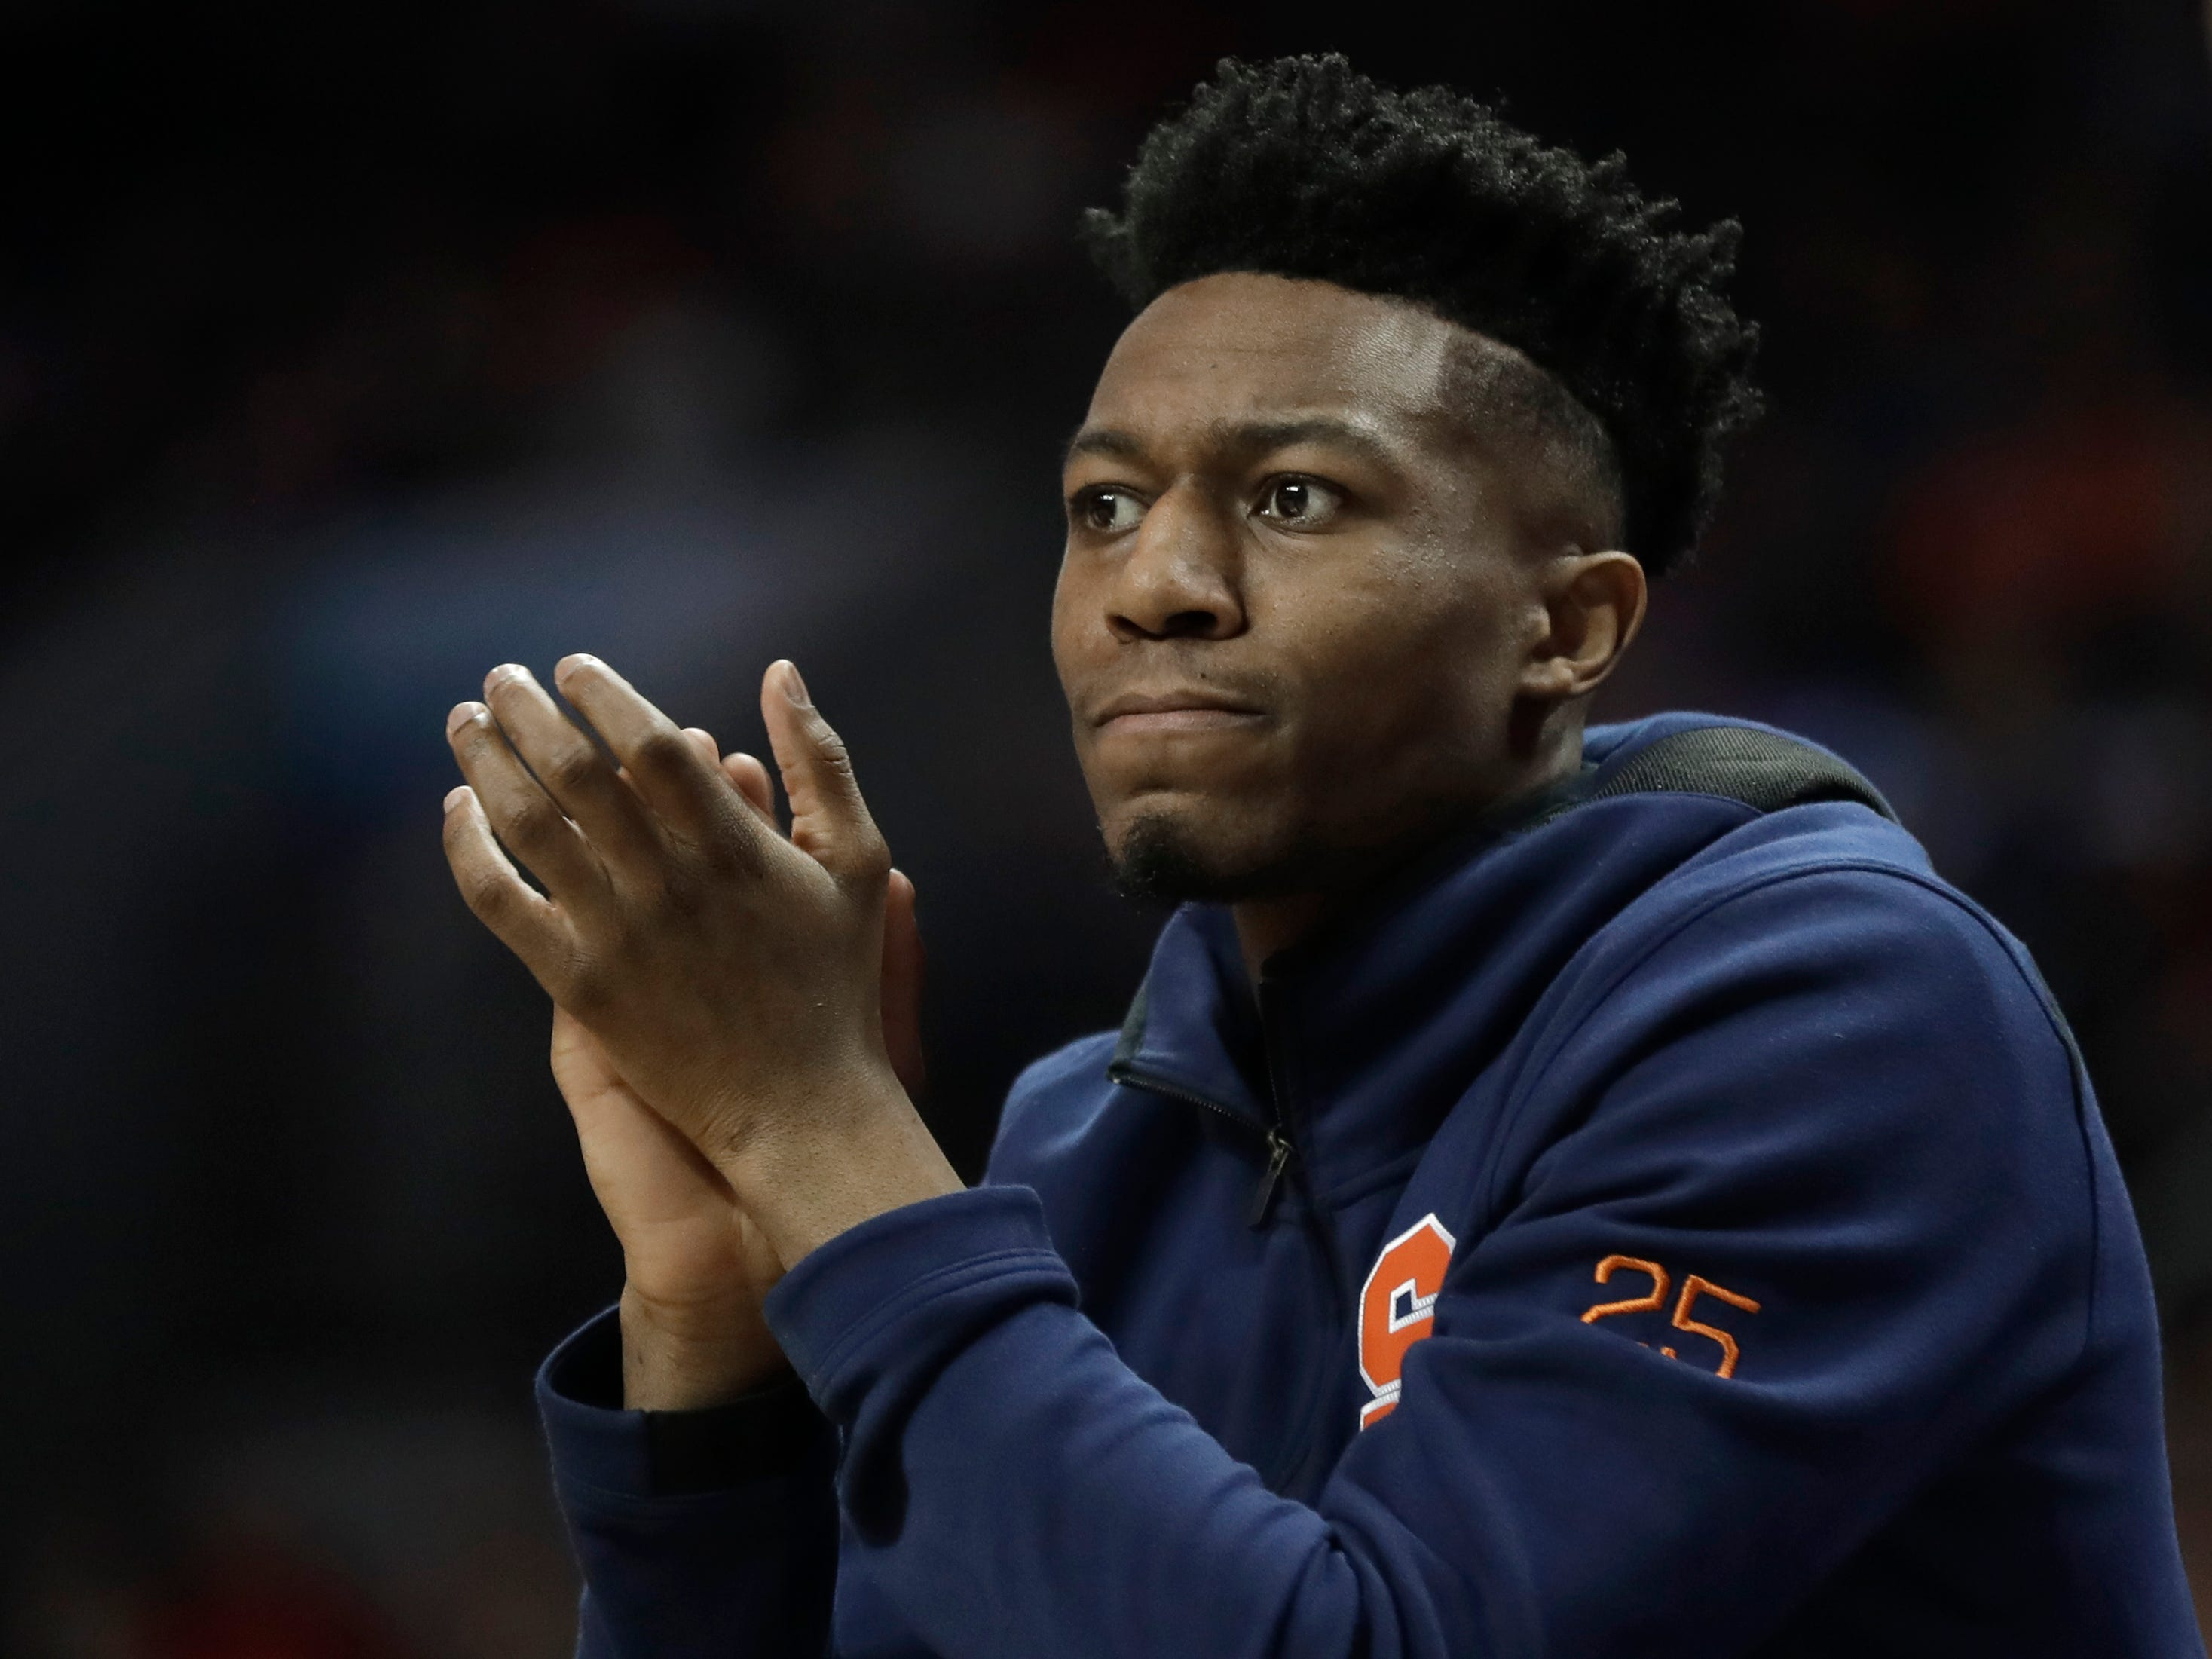 Syracuse's Tyus Battle cheers his teammates from the bench during the first half of an NCAA college basketball game against Pittsburgh in the Atlantic Coast Conference tournament in Charlotte, N.C., Wednesday, March 13, 2019. Battle was unable to play due to an injury.